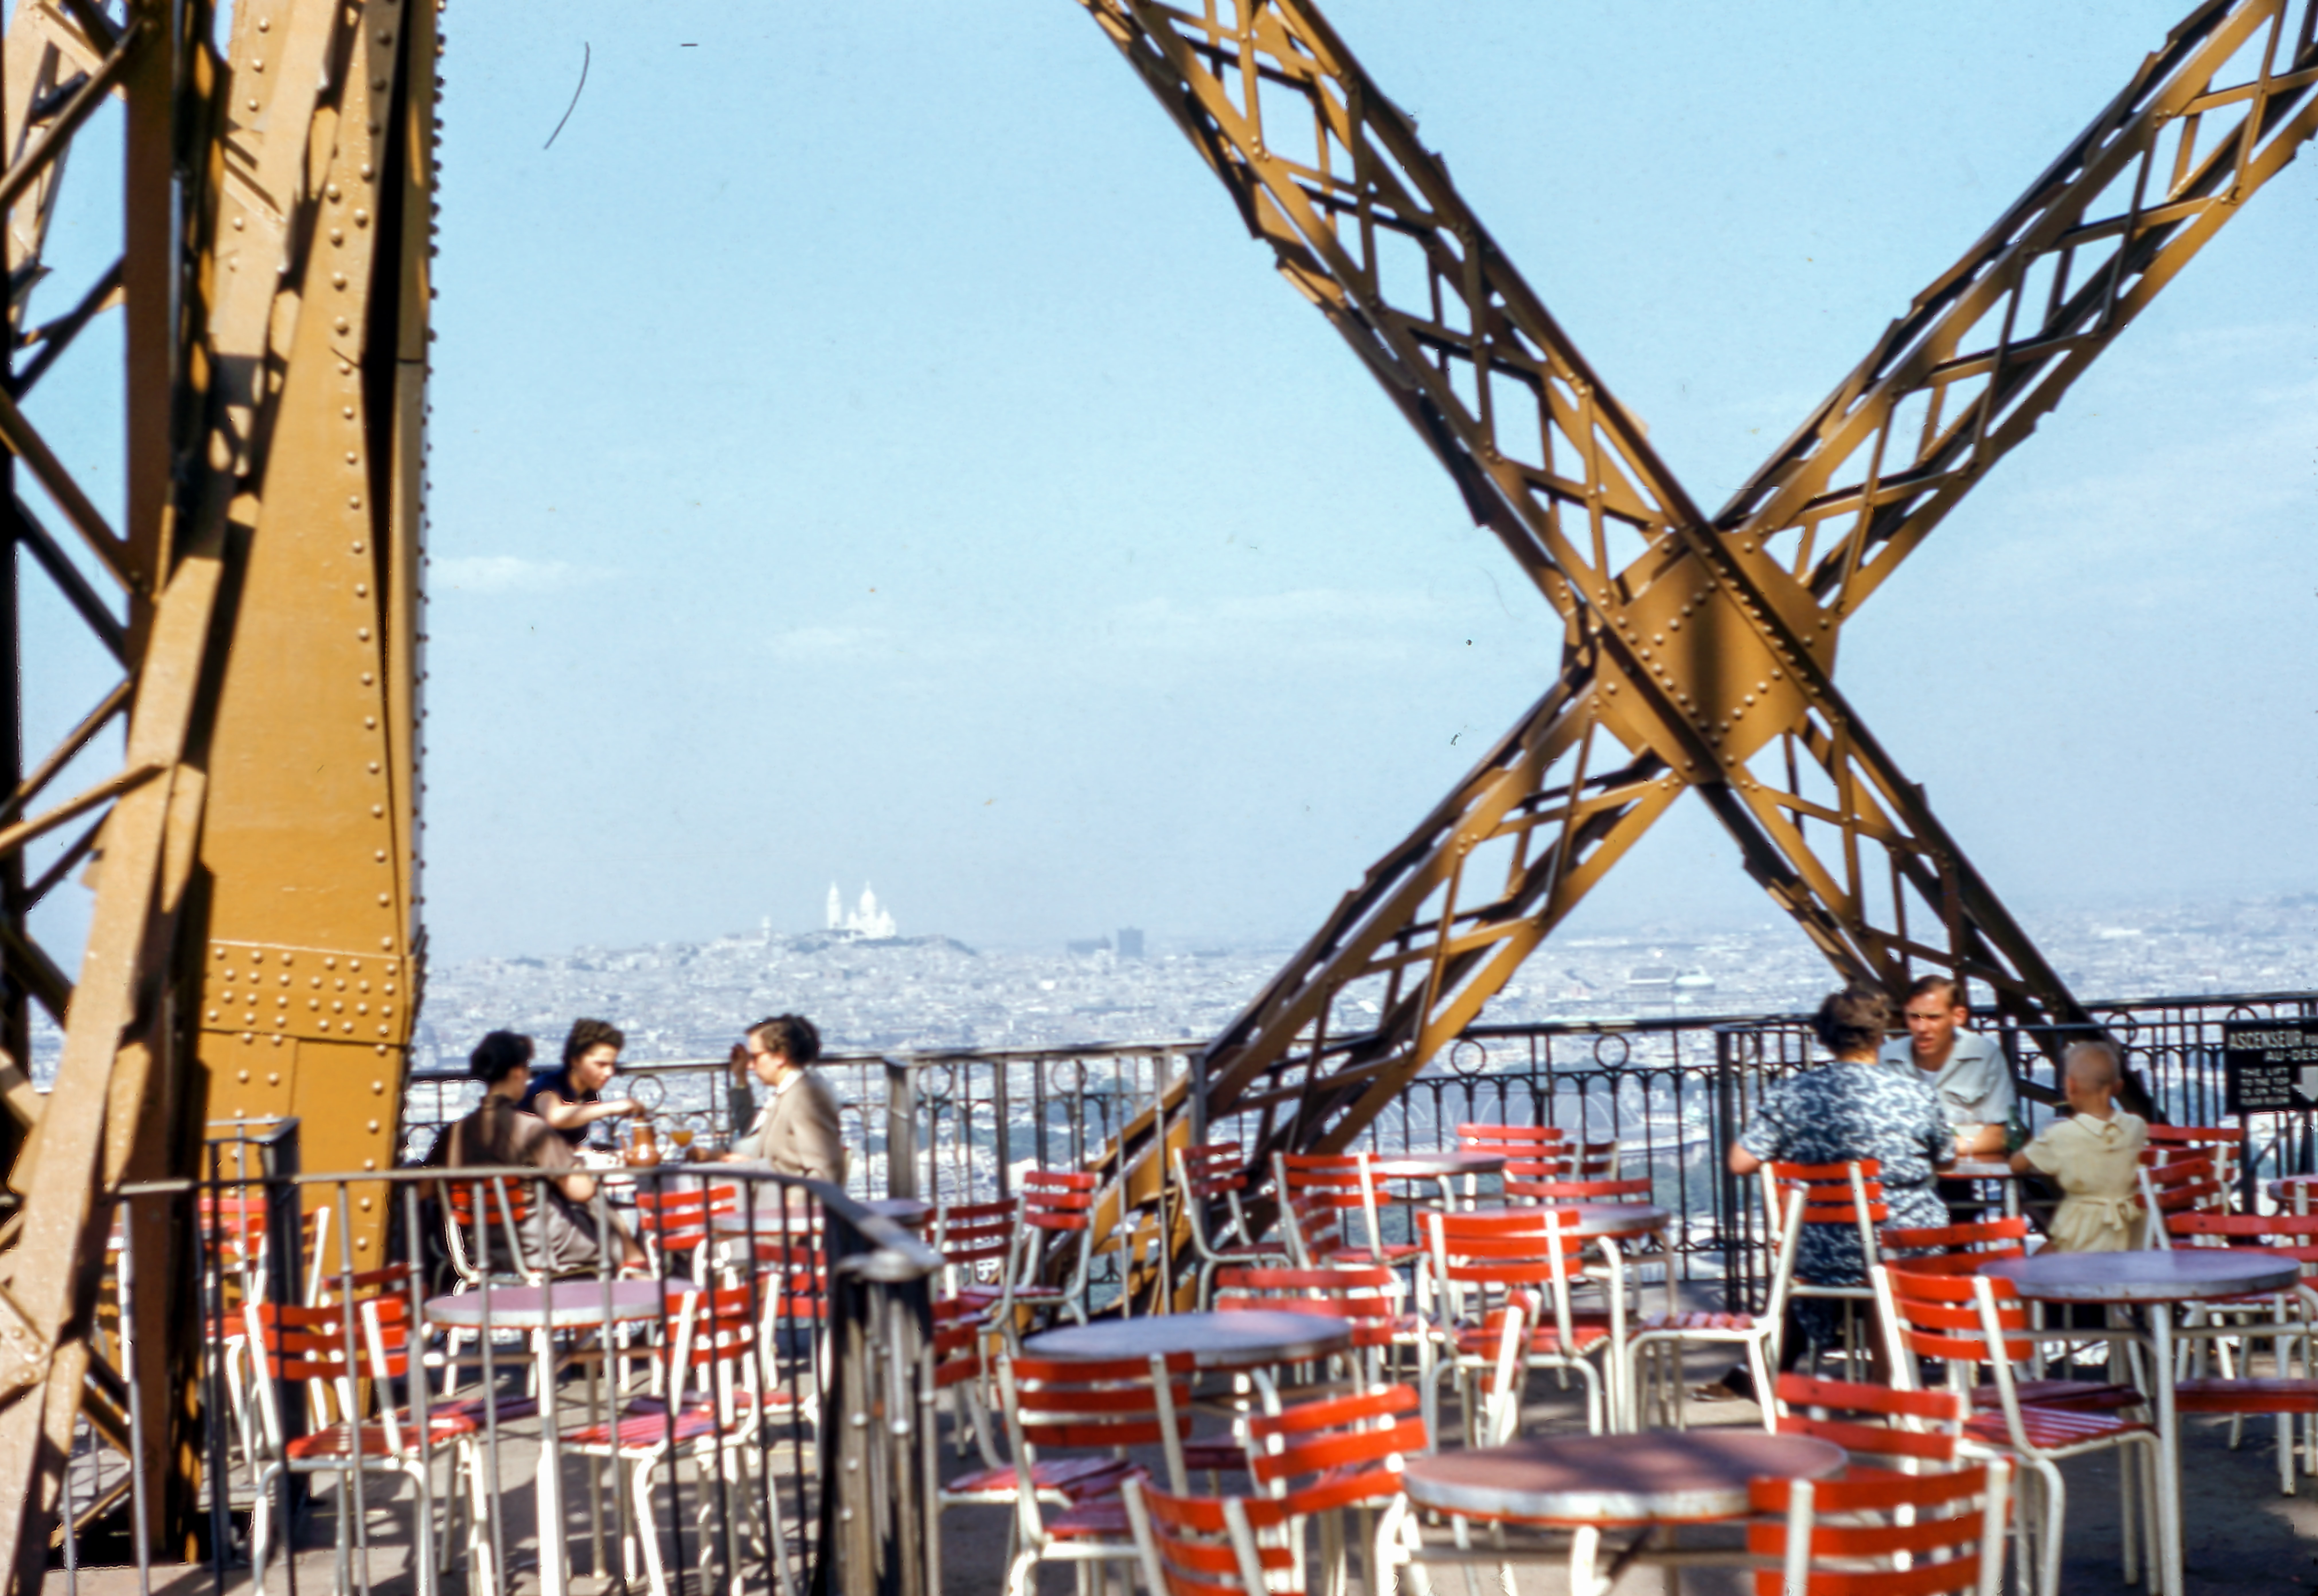 Two groups of people sitting at patio tables on the Eiffel Tower terrasse in Paris